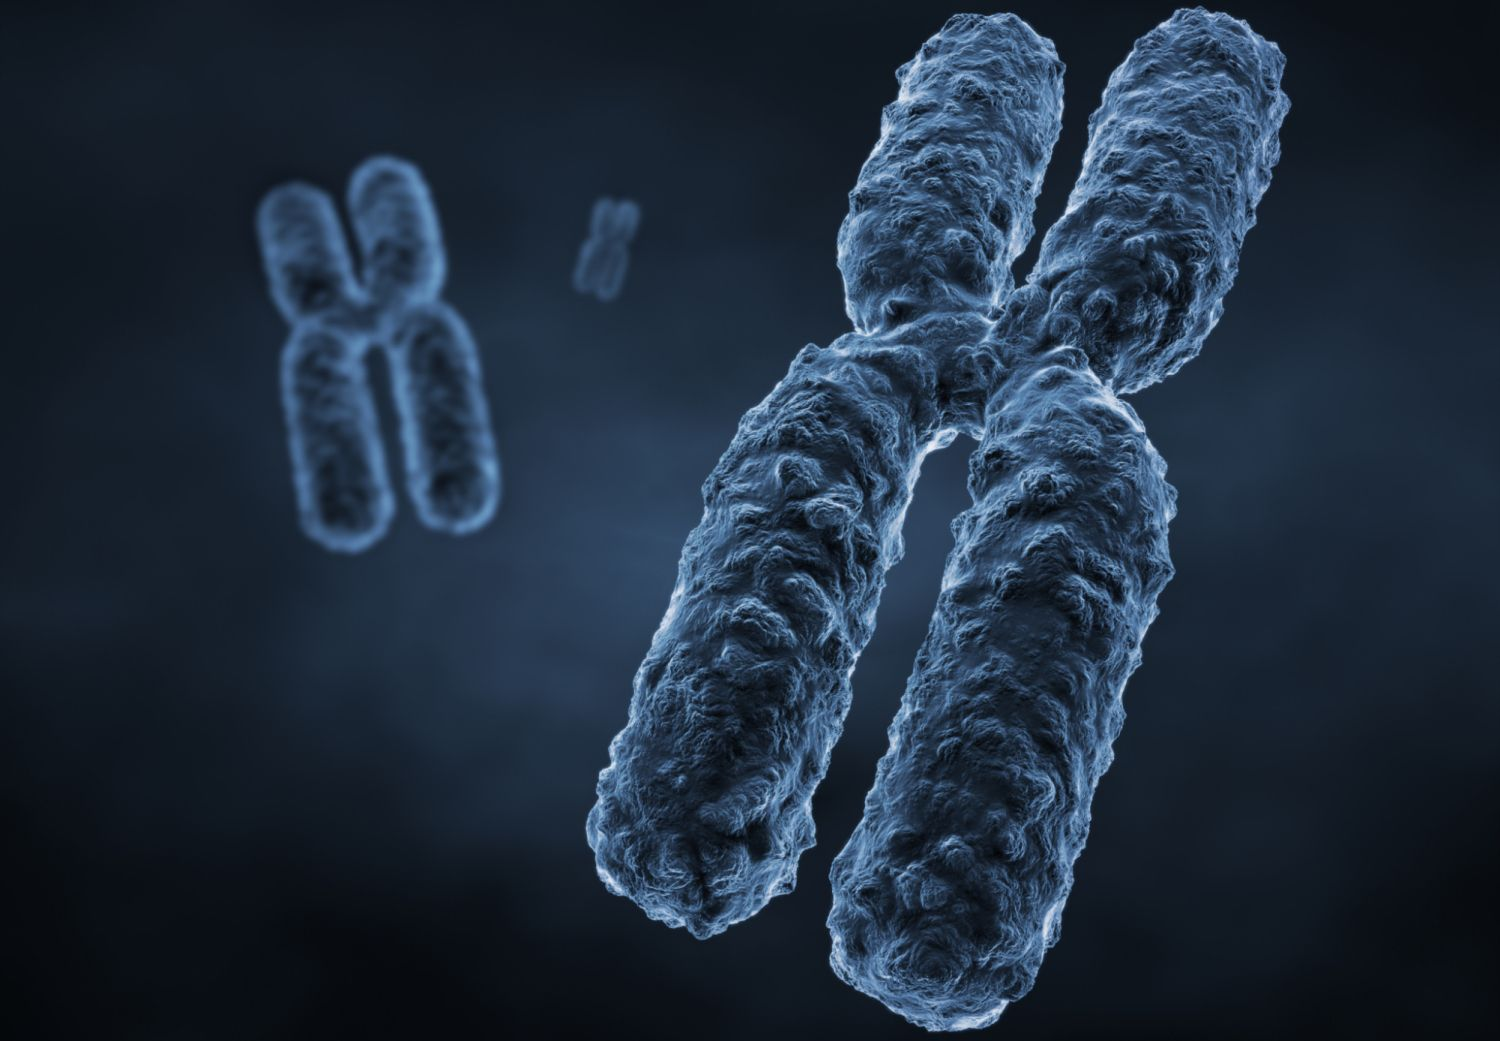 10 Facts About Chromosomes-7341